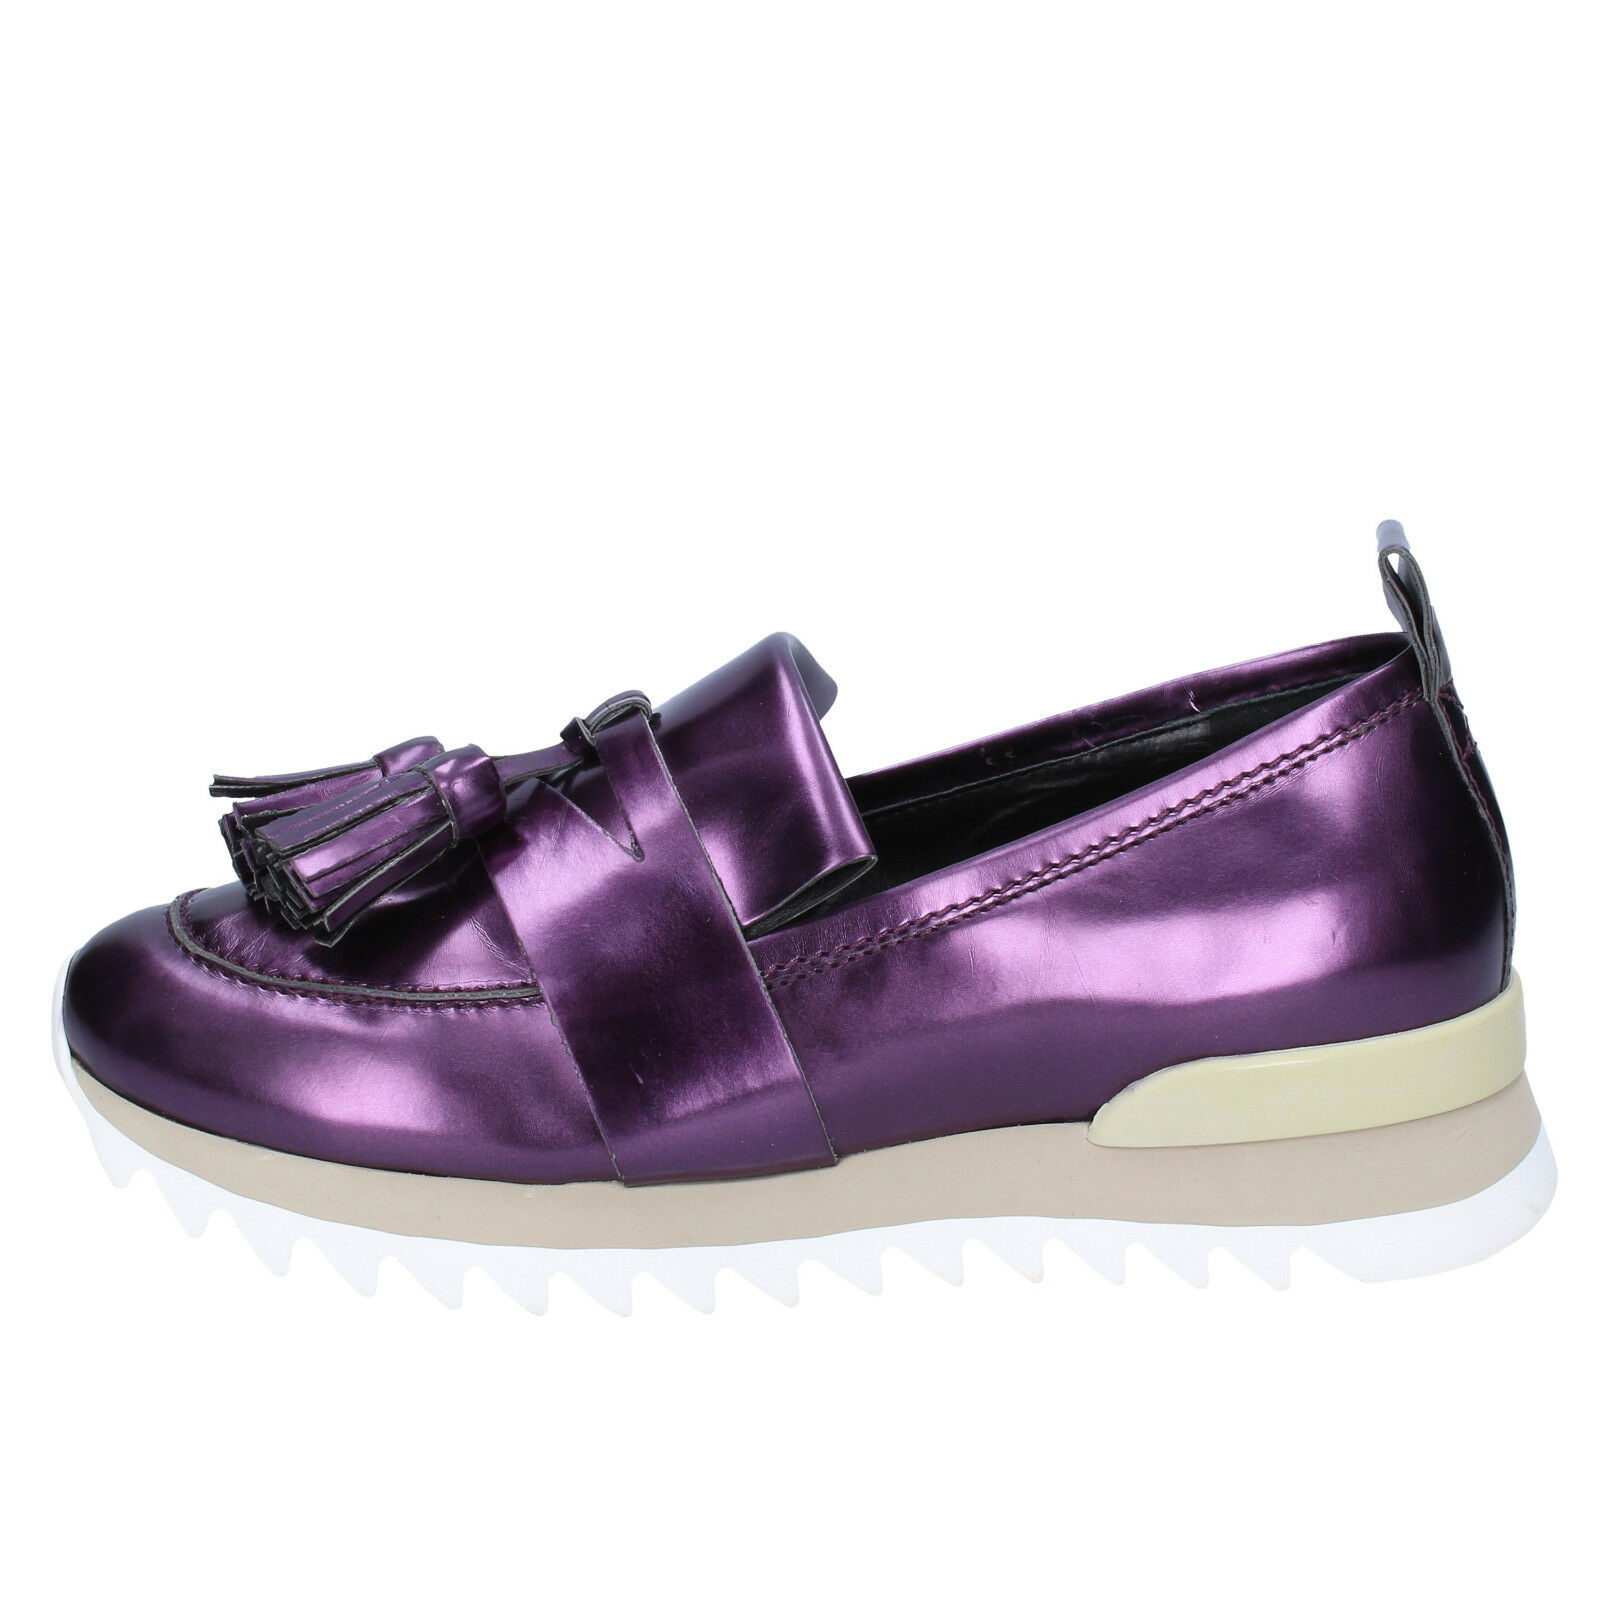 Chaussures Femmes My gris mer 39 basses violet cuir bx37-39